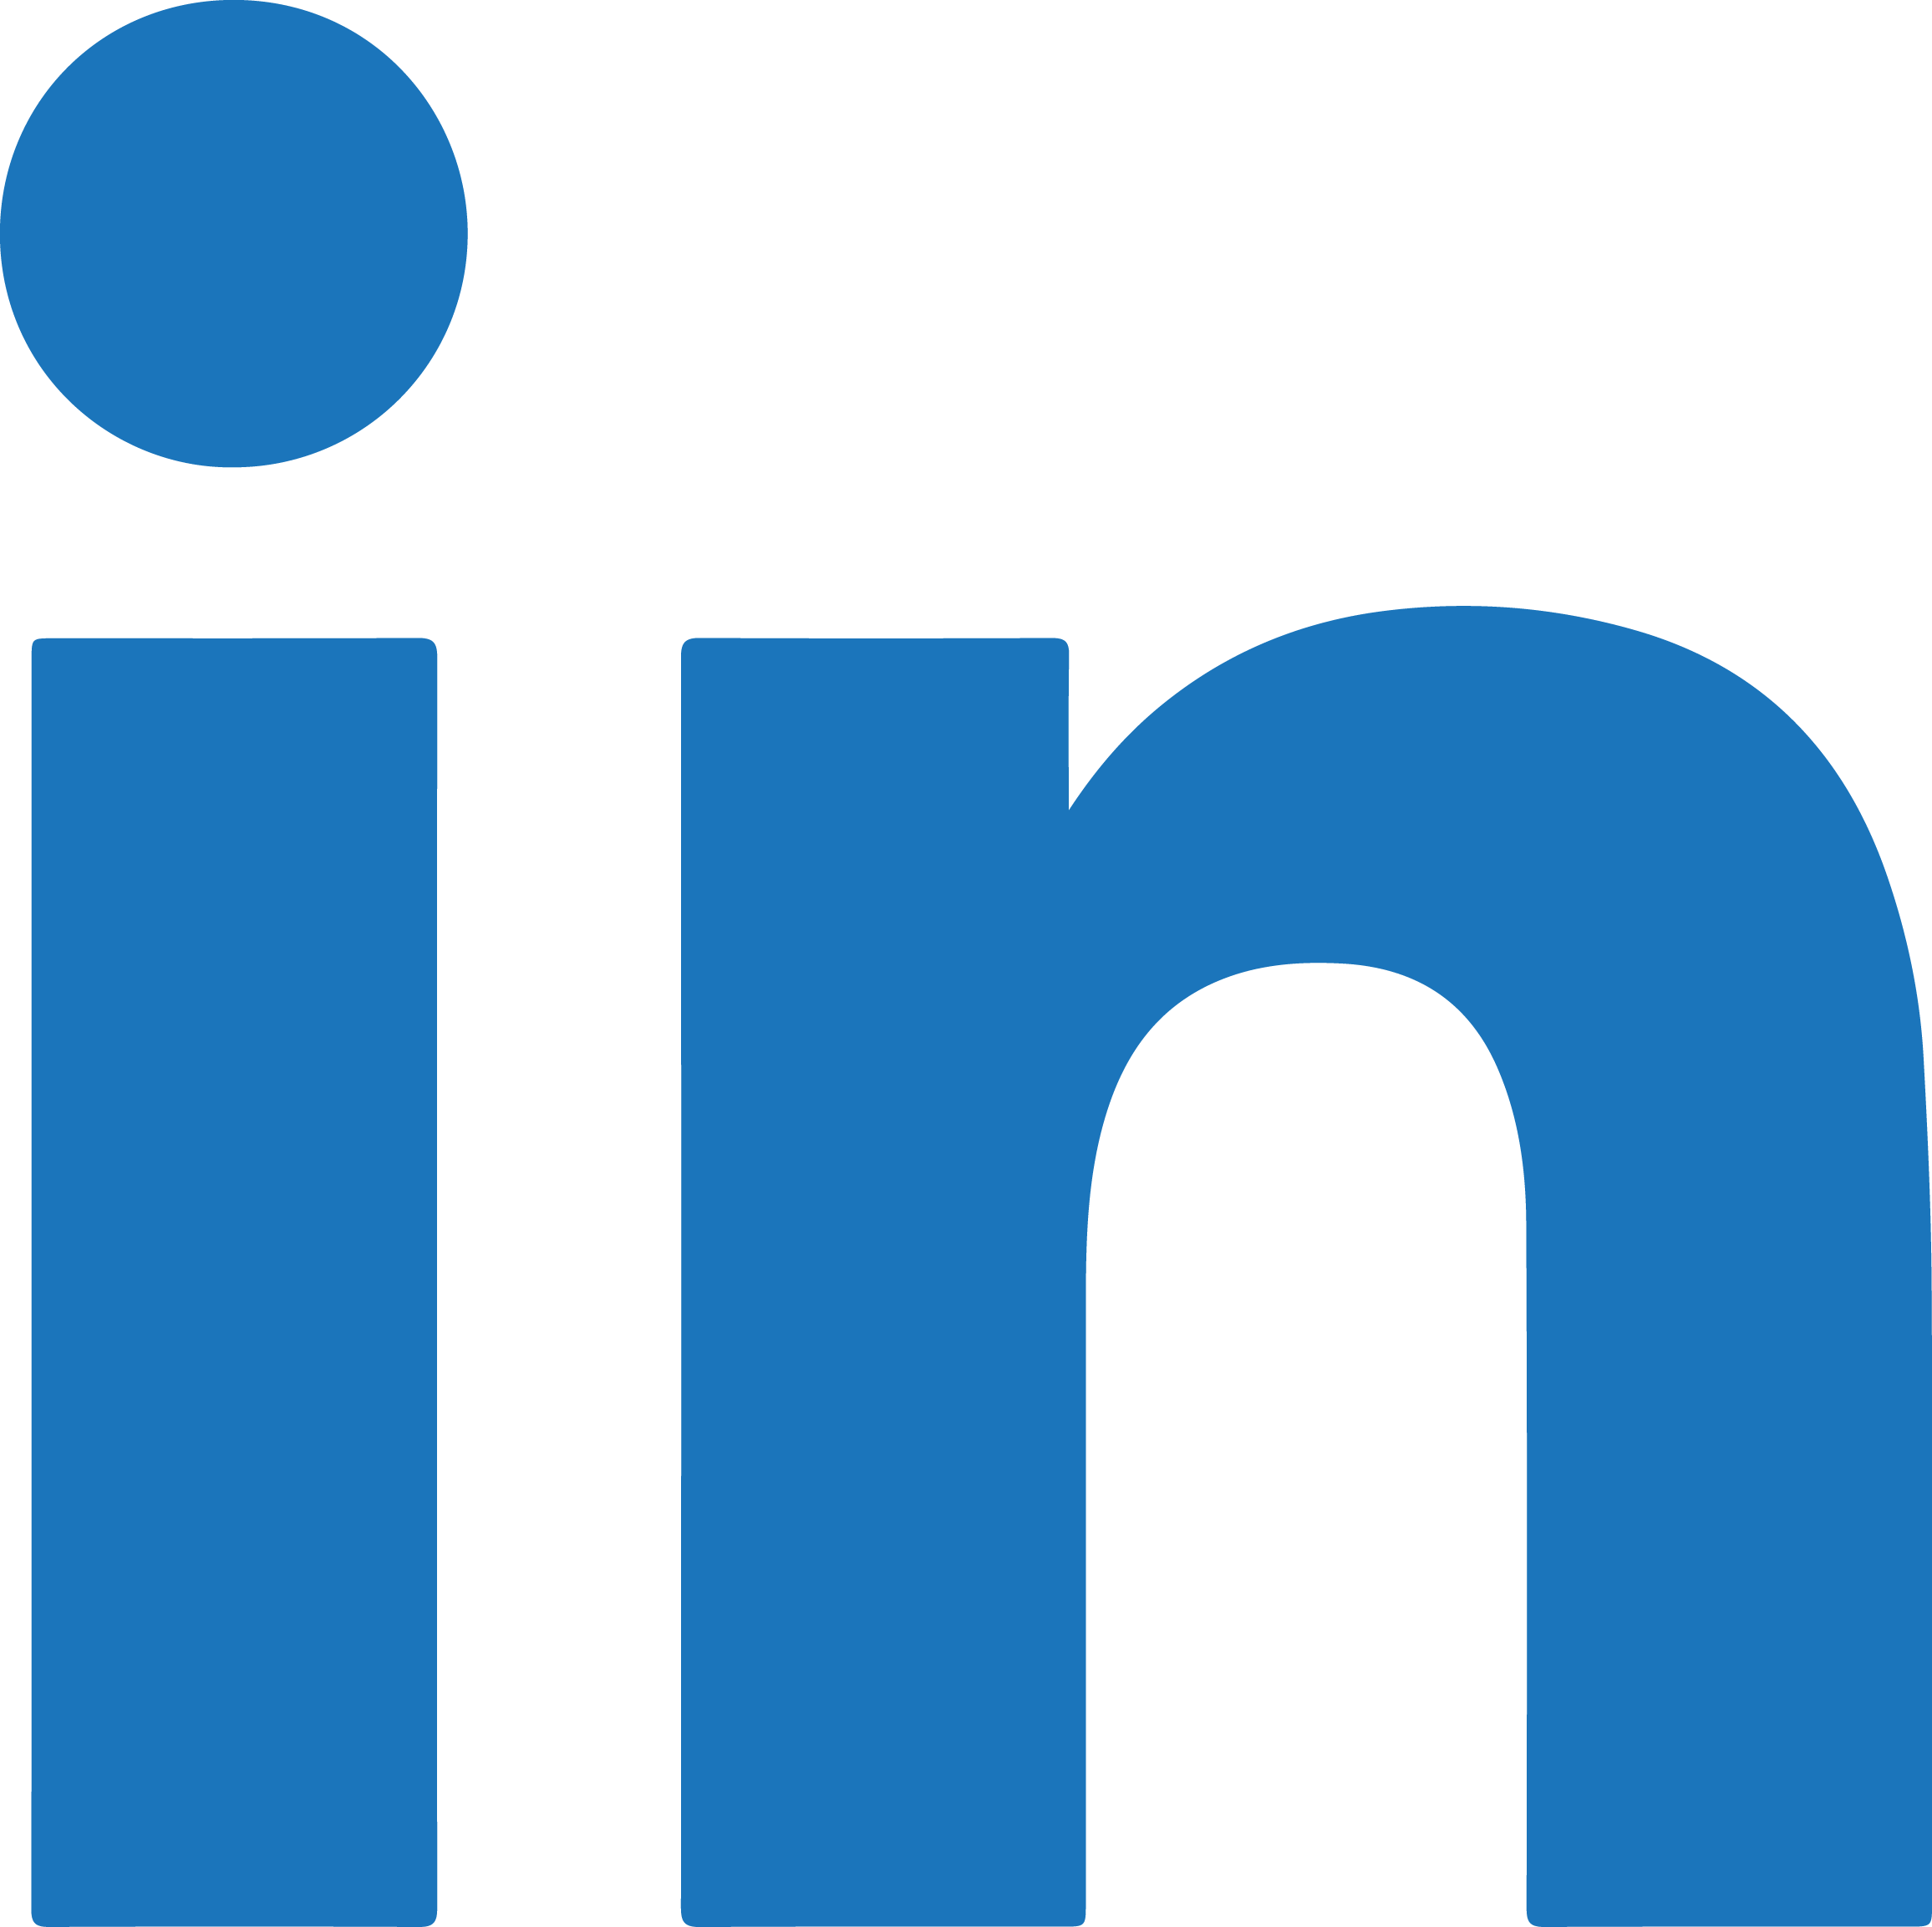 Official linkedin logo visiting. Patient clipart healthcare system